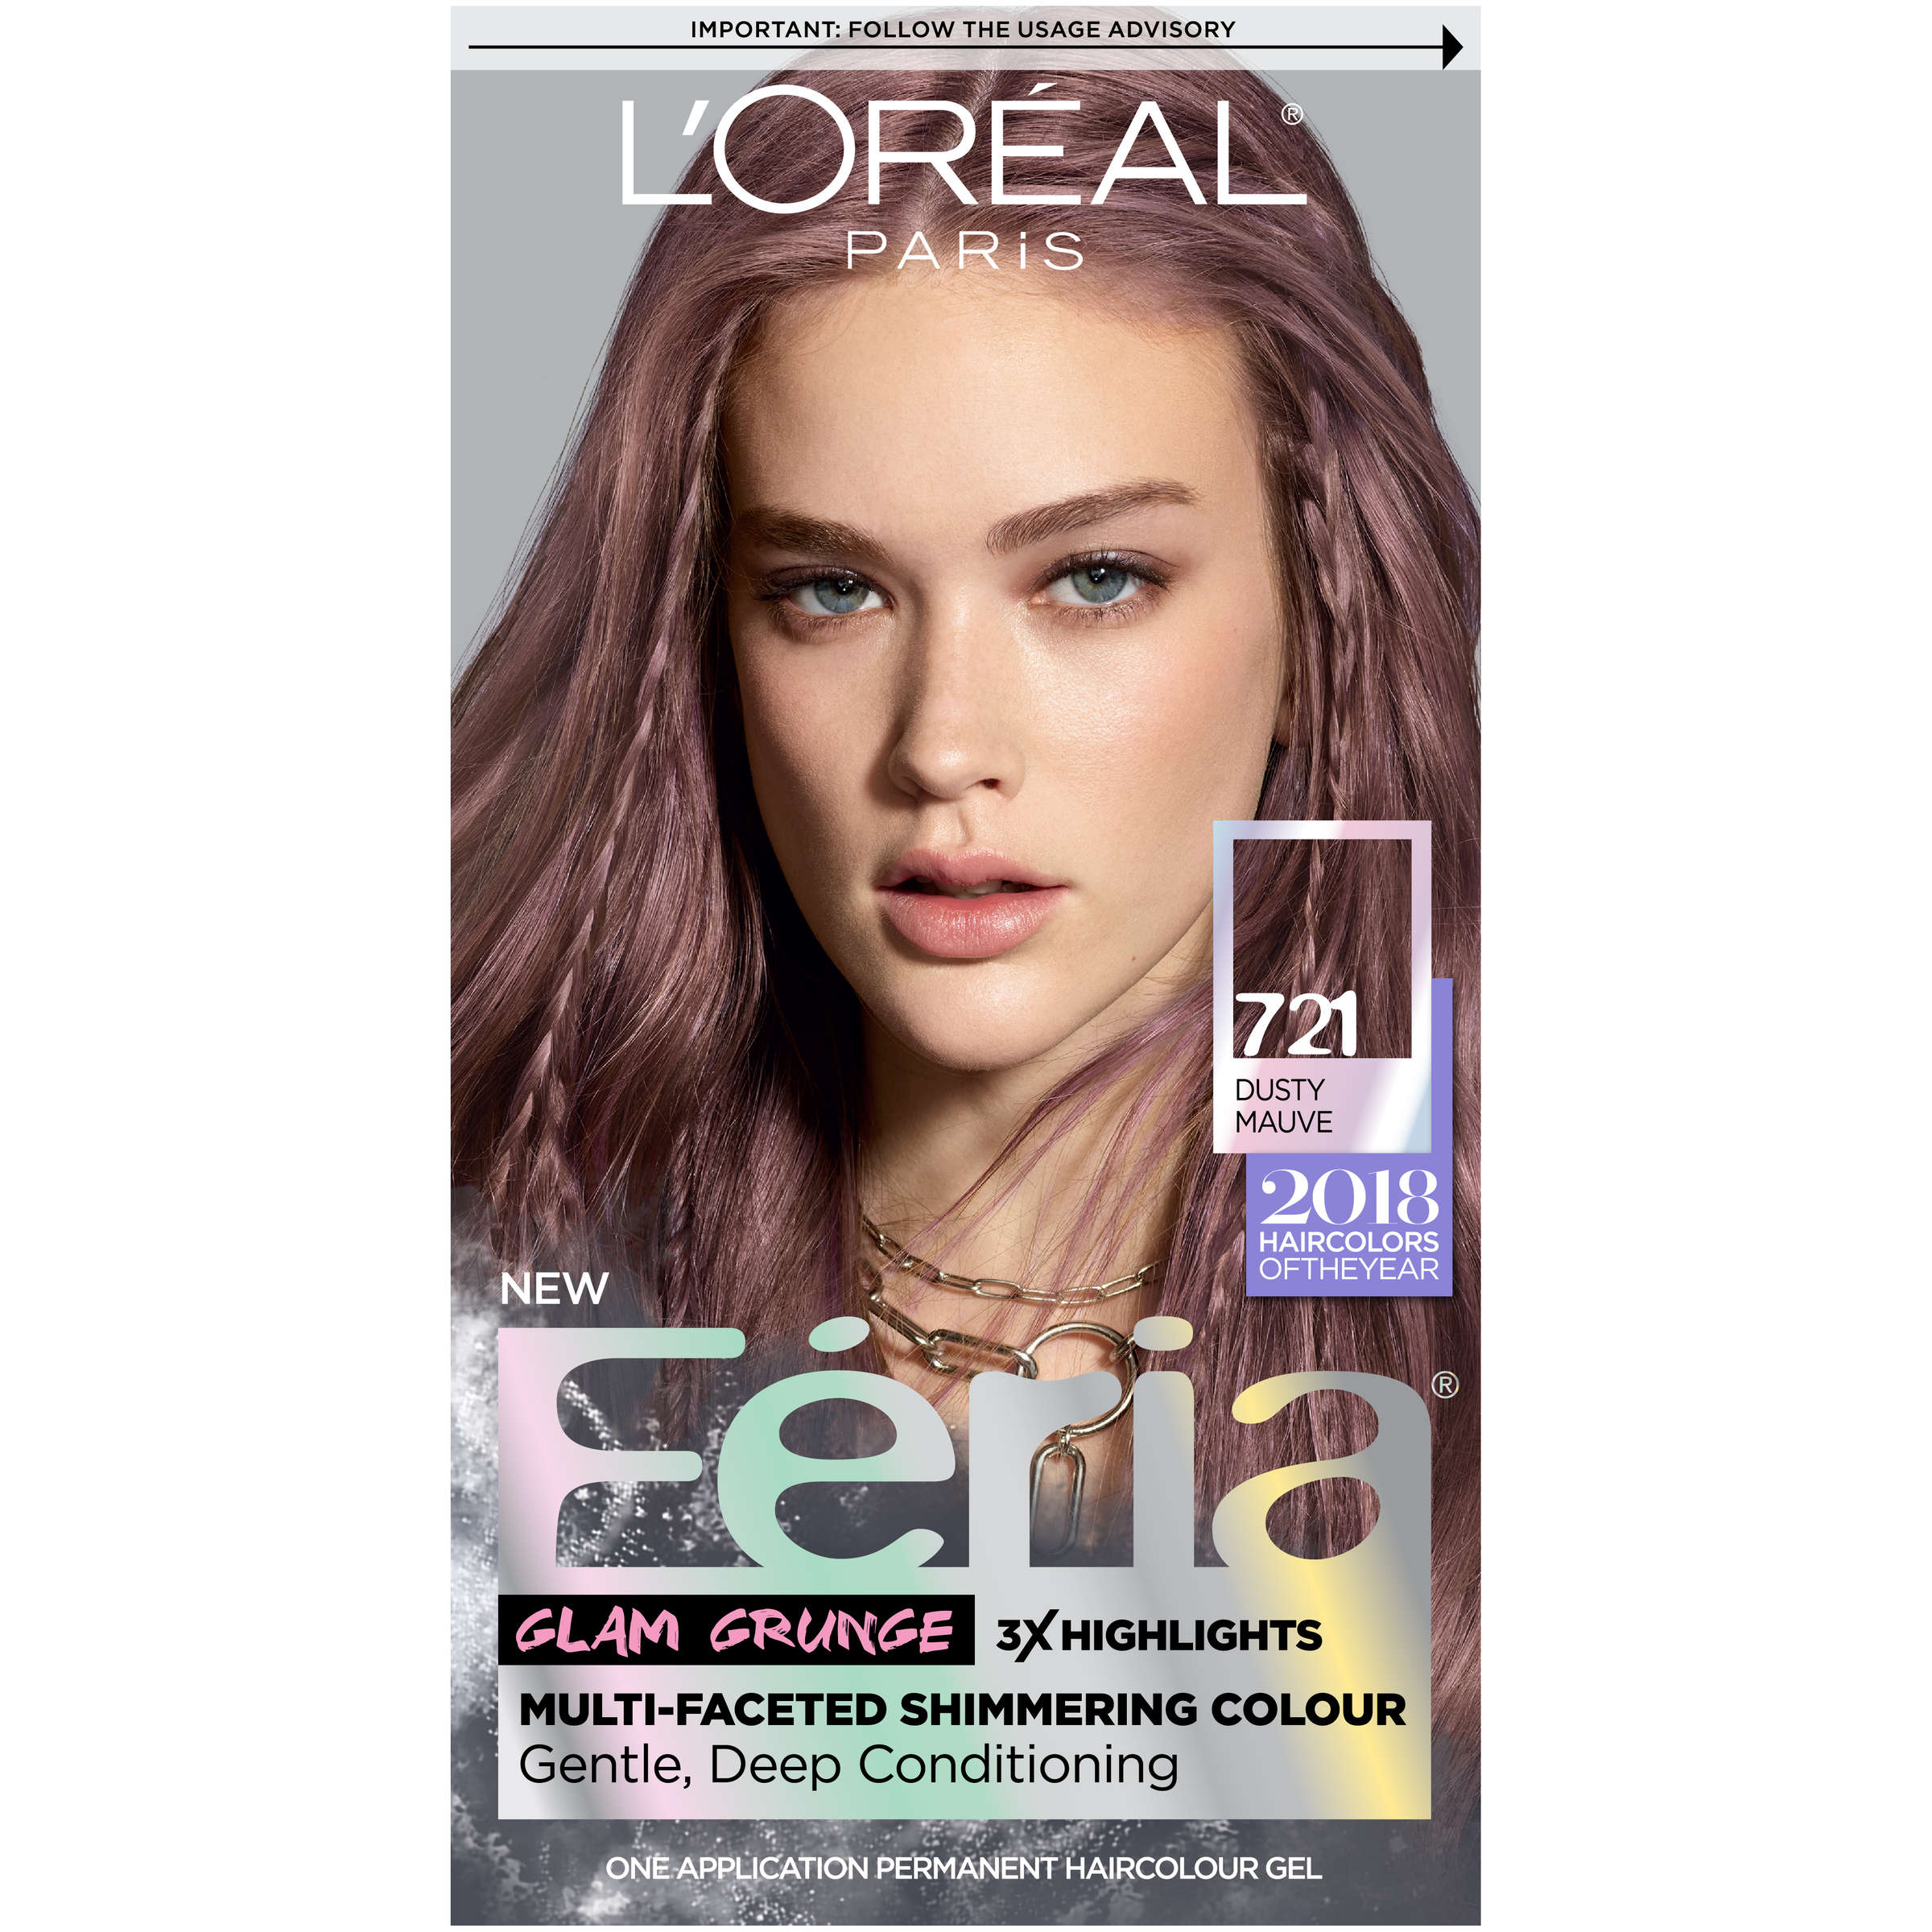 L Oreal Paris Feria Permanent Hair Color 721 Dusty Mauve